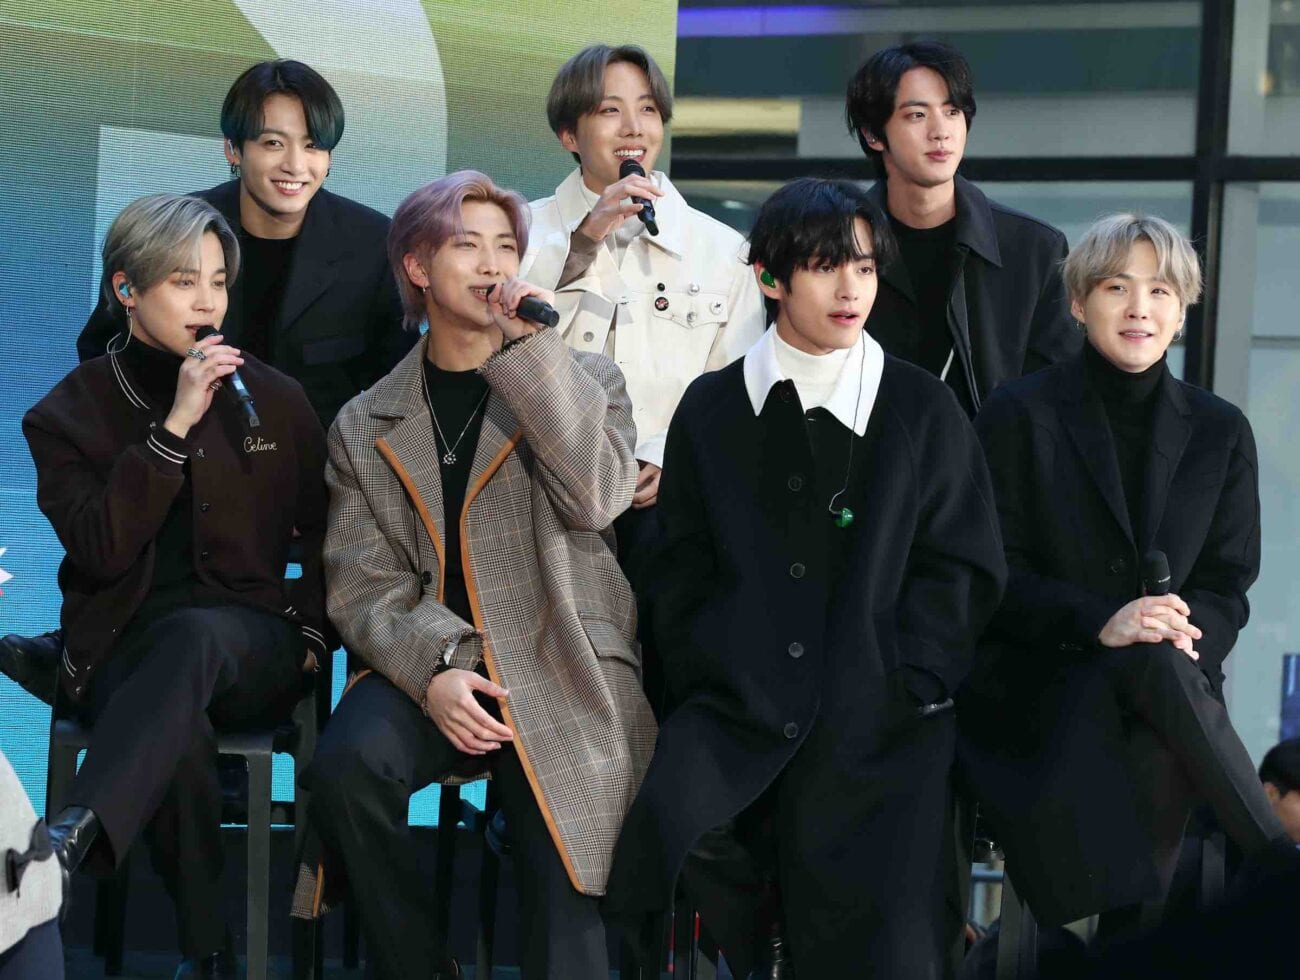 BTS has been known to do collabs with popular English speaking artists in the past, now fans are wondering who will be next.